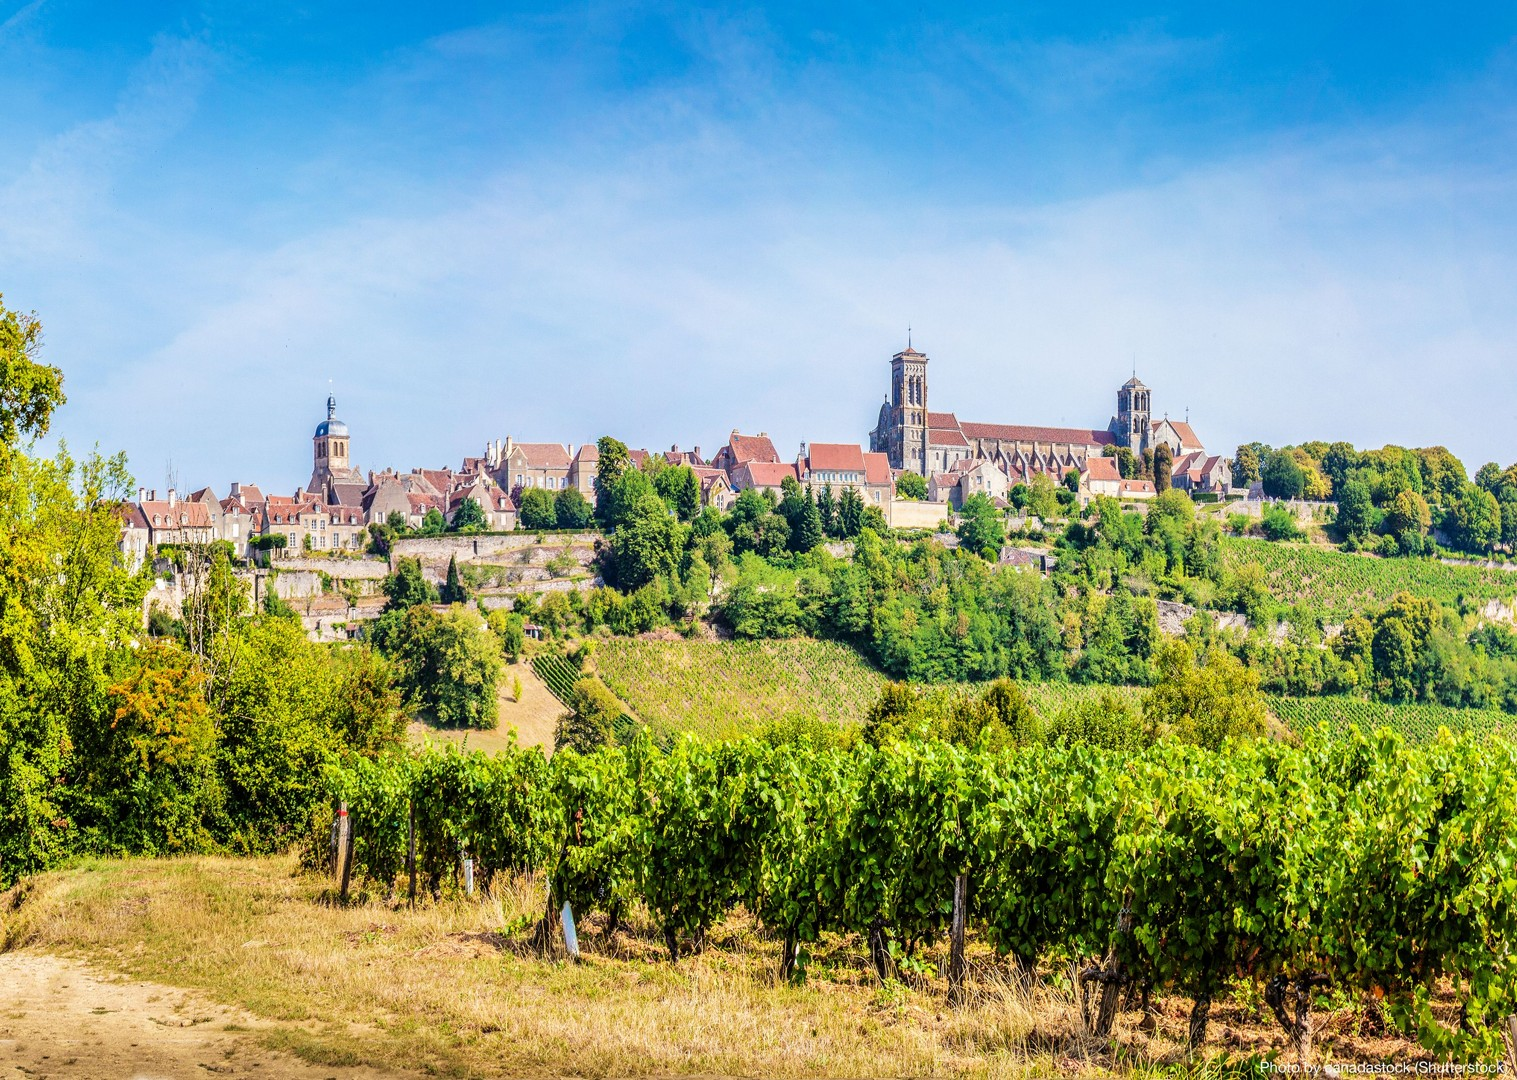 burgundy-cycling-holiday-in-france-caves-and-canals.jpg - France - Burgundy - Caves and Canals - Self-Guided Leisure Cycling Holiday - Leisure Cycling